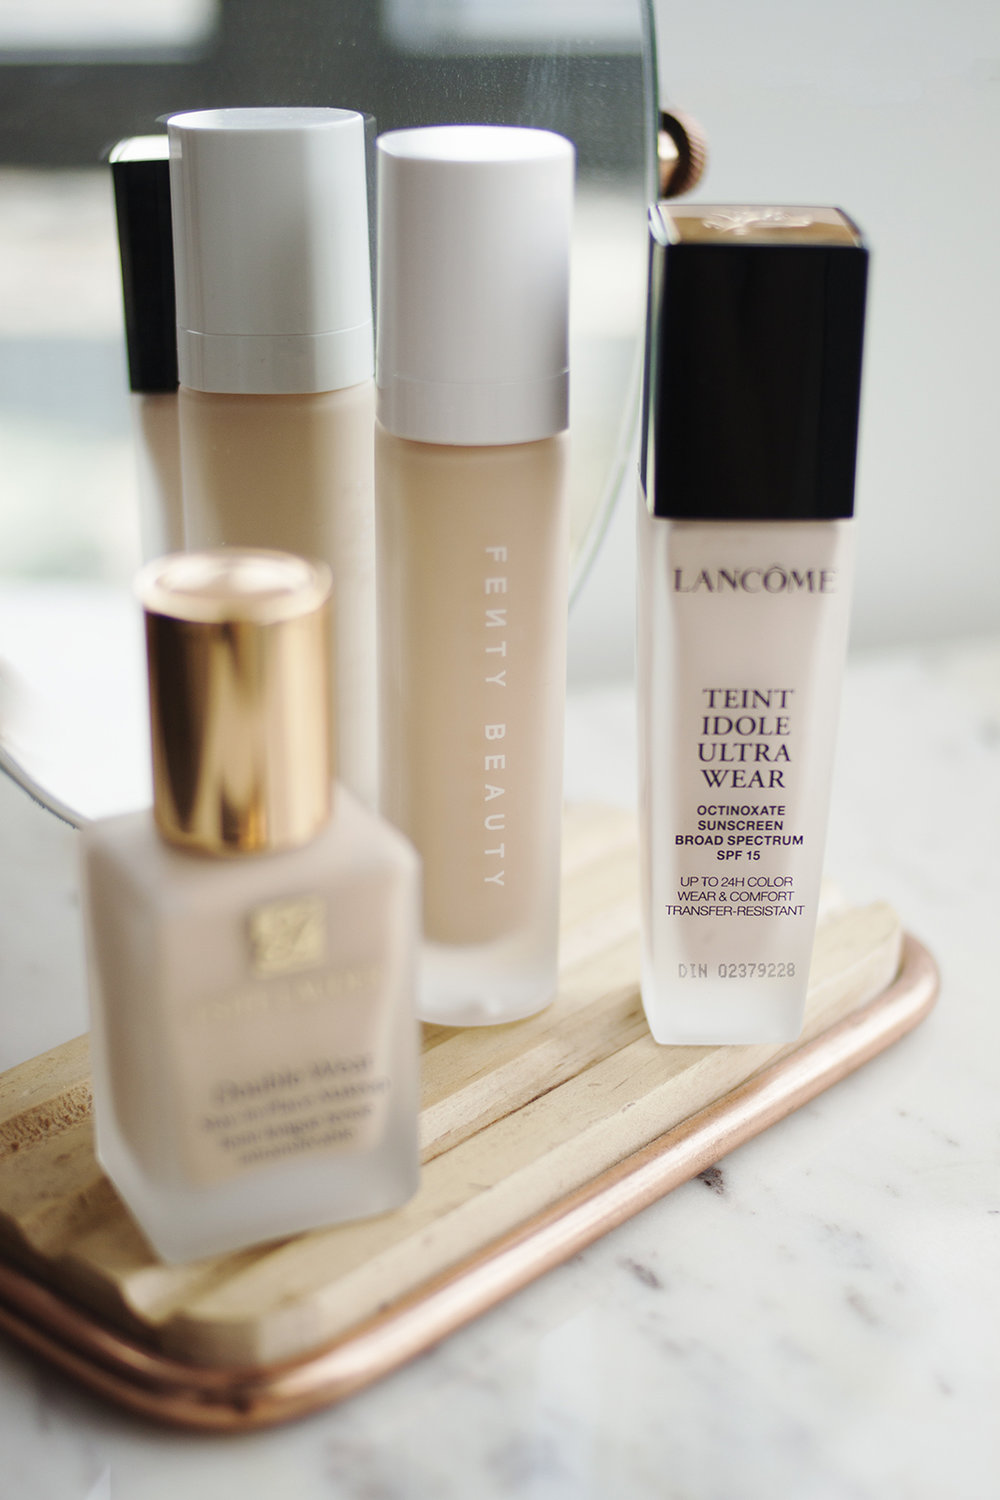 - I'm not sure how long the Lancome Tient Idole Ultra Wear Foundation (AU) has been around, but I do know that I was late to the party. I feel like this foundation really doesn't get much buzz online, but the formula is great for oily skin. It has a thin cream texture and medium coverage that I imagine could be built up if that's what you wanted to do.I find that it's barely detectable on the skin, and it lasts impressively throughout the day. Basically, it's just what I'm looking for in a foundation, and if you want a slightly more lightweight version of the original Double Wear, this is it.It also has a really impressive shade range. I'm typically the lightest shade in any foundation with a neutral/yellow undertone, and this is a bit too fair for me! I bought the shade 090 Ivoirewhich is the fairest neutral shade, but I probably should have gone with shade 100, which also has a neutral undertone. I can definitely make this work though, and it's really a product that deserves a lot more attention that it seems to get.